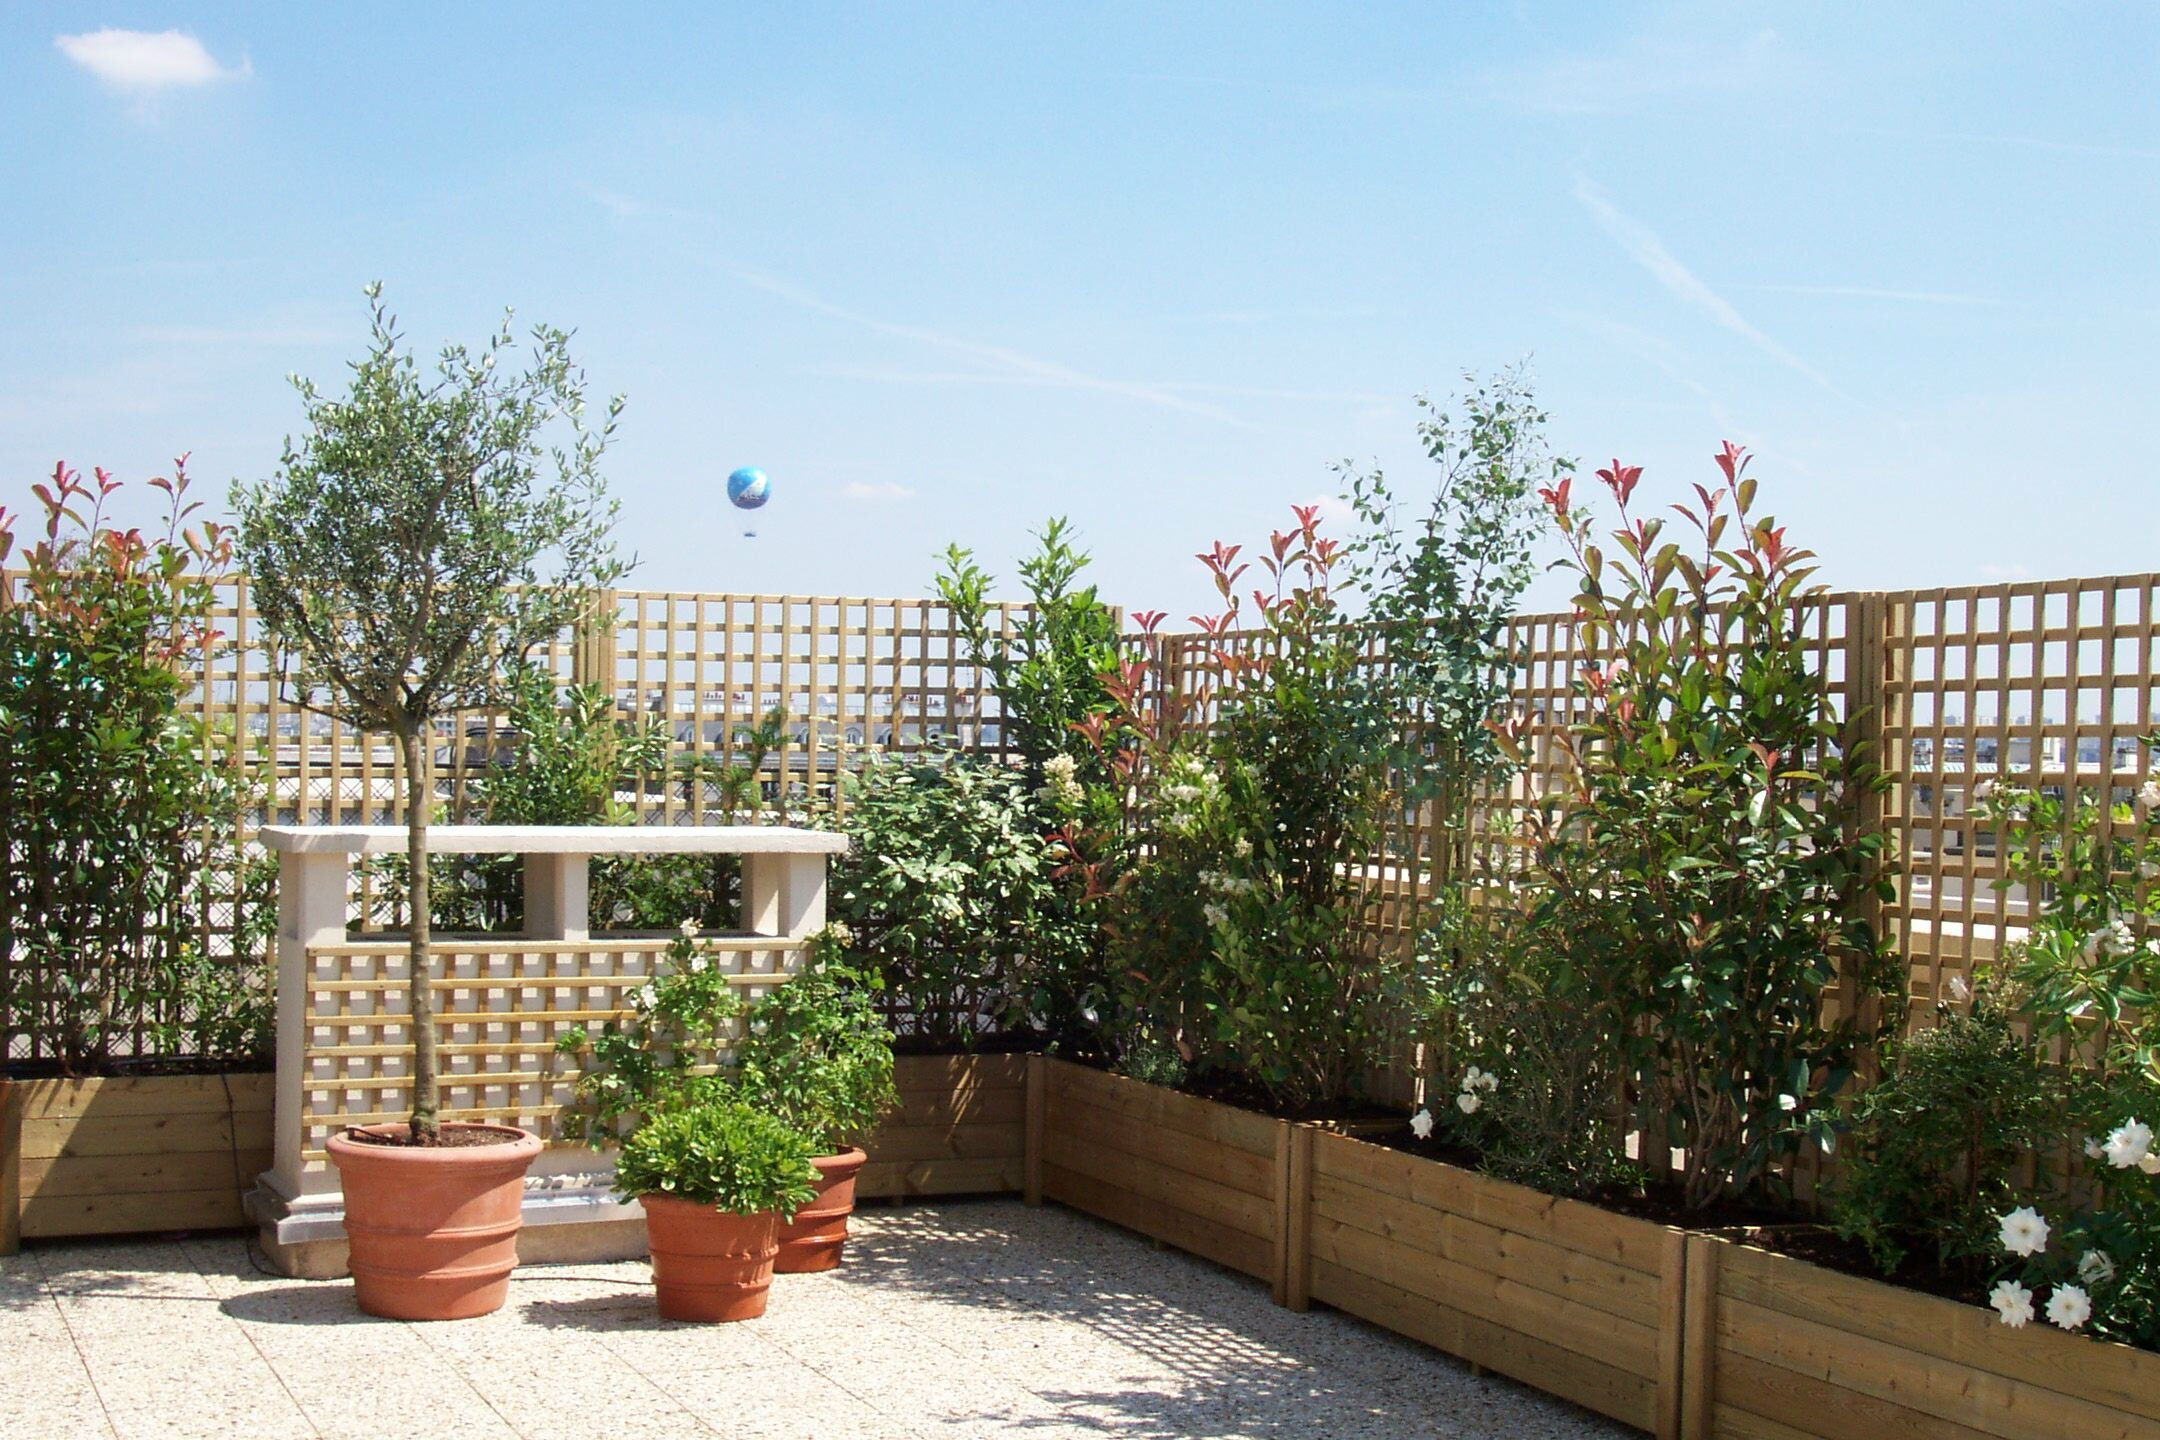 Astuces conseils comment am nager sa terrasse terrasses for Terrasse amenagement plantes